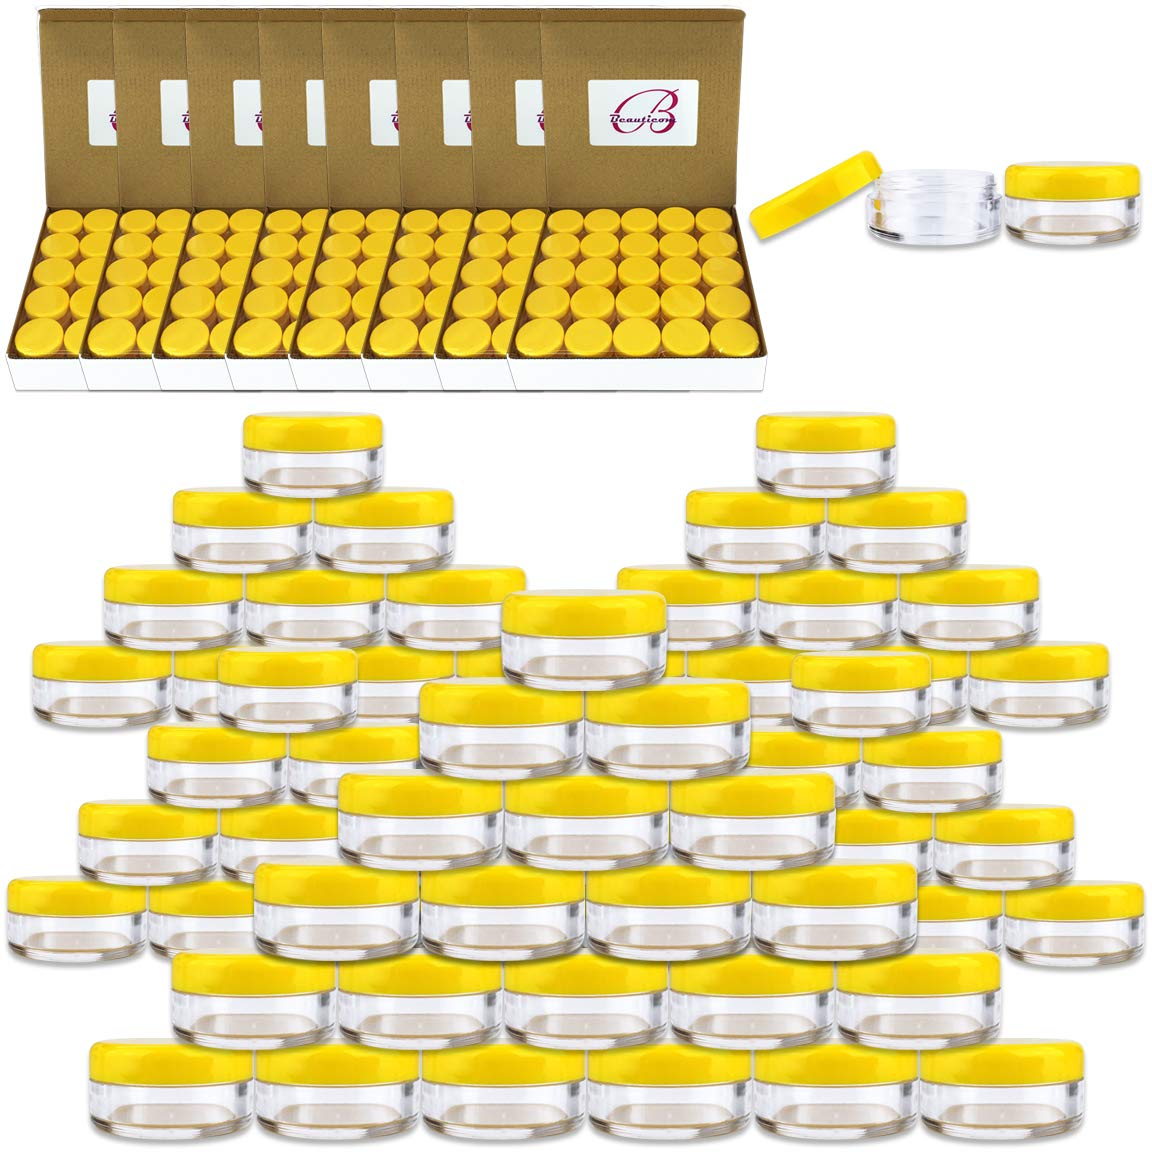 (Quantity: 1000 Pieces) Beauticom 5G/5ML Round Clear Jars with YELLOW Lids for Scrubs, Oils, Toner, Salves, Creams, Lotions, Makeup Samples, Lip Balms - BPA Free by Beauticom